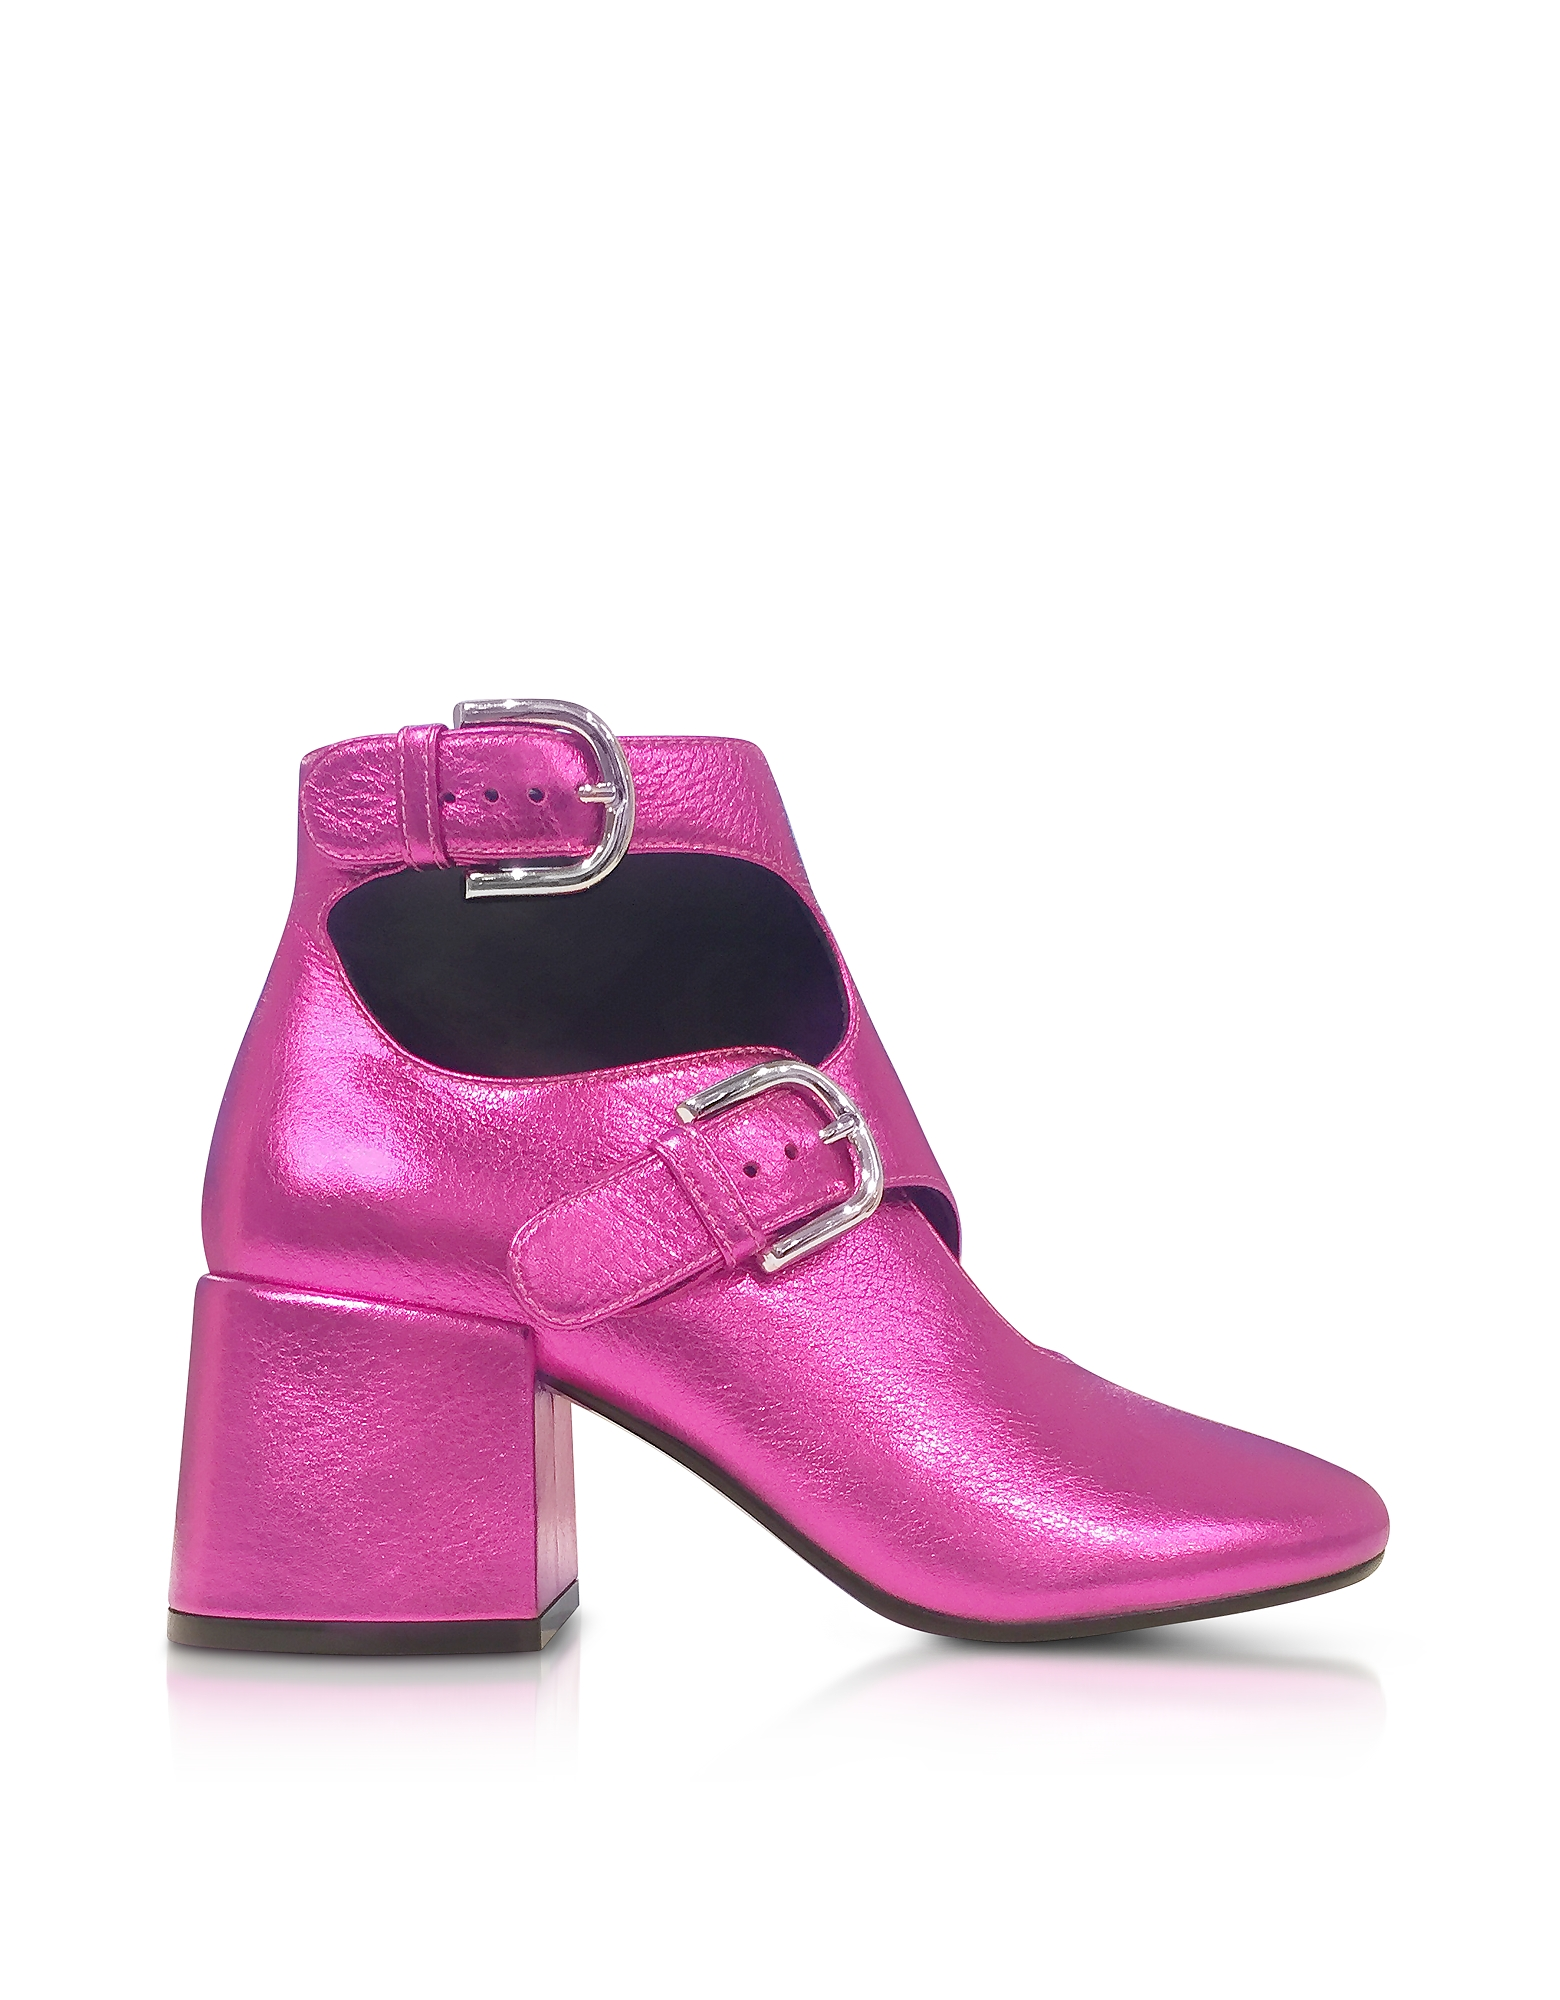 MM6 Maison Martin Margiela Shoes, Pink Laminated Leather Bootie